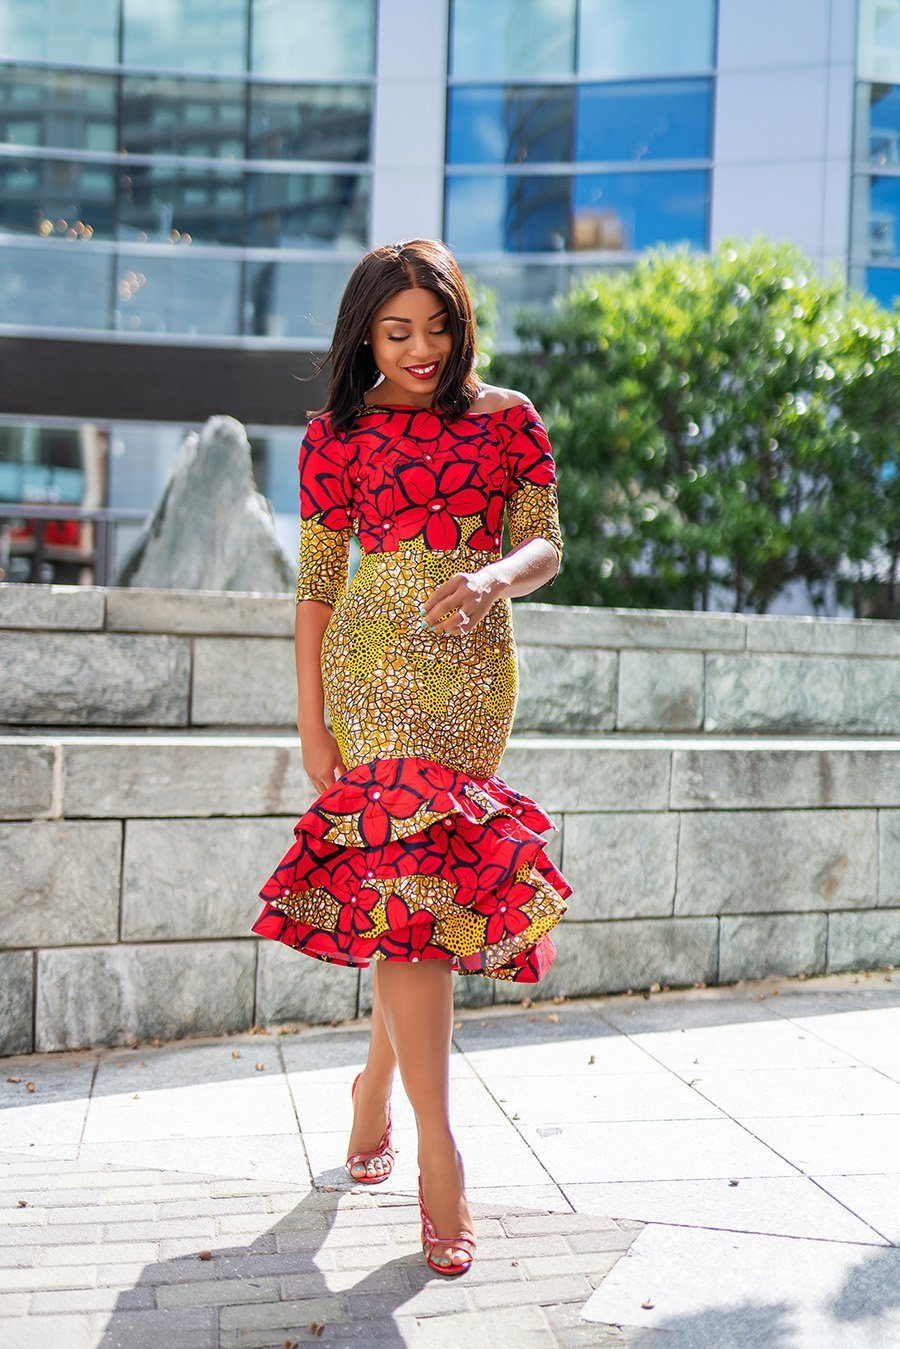 Stella-Adewunmi-of-Jadore-Fashion-shares-what-to-wear-this-holiday-and-beyond